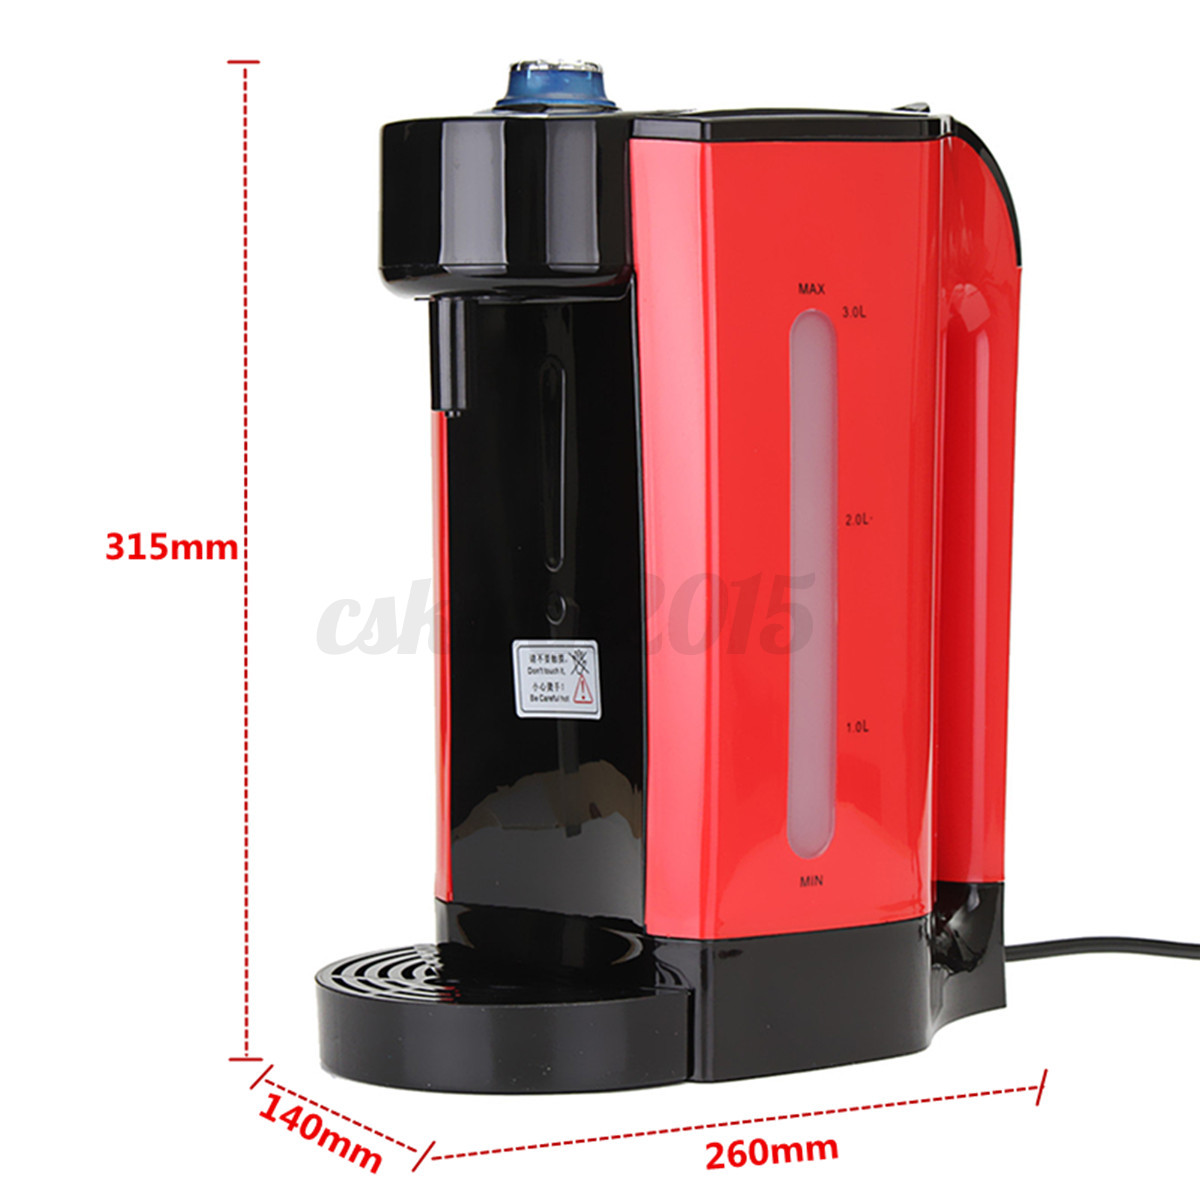 Coffee Maker Water Boiler Oxone : 3L Instant Hot Water Boiling Kettle Electric Heating Tea Coffee Maker Dispenser eBay